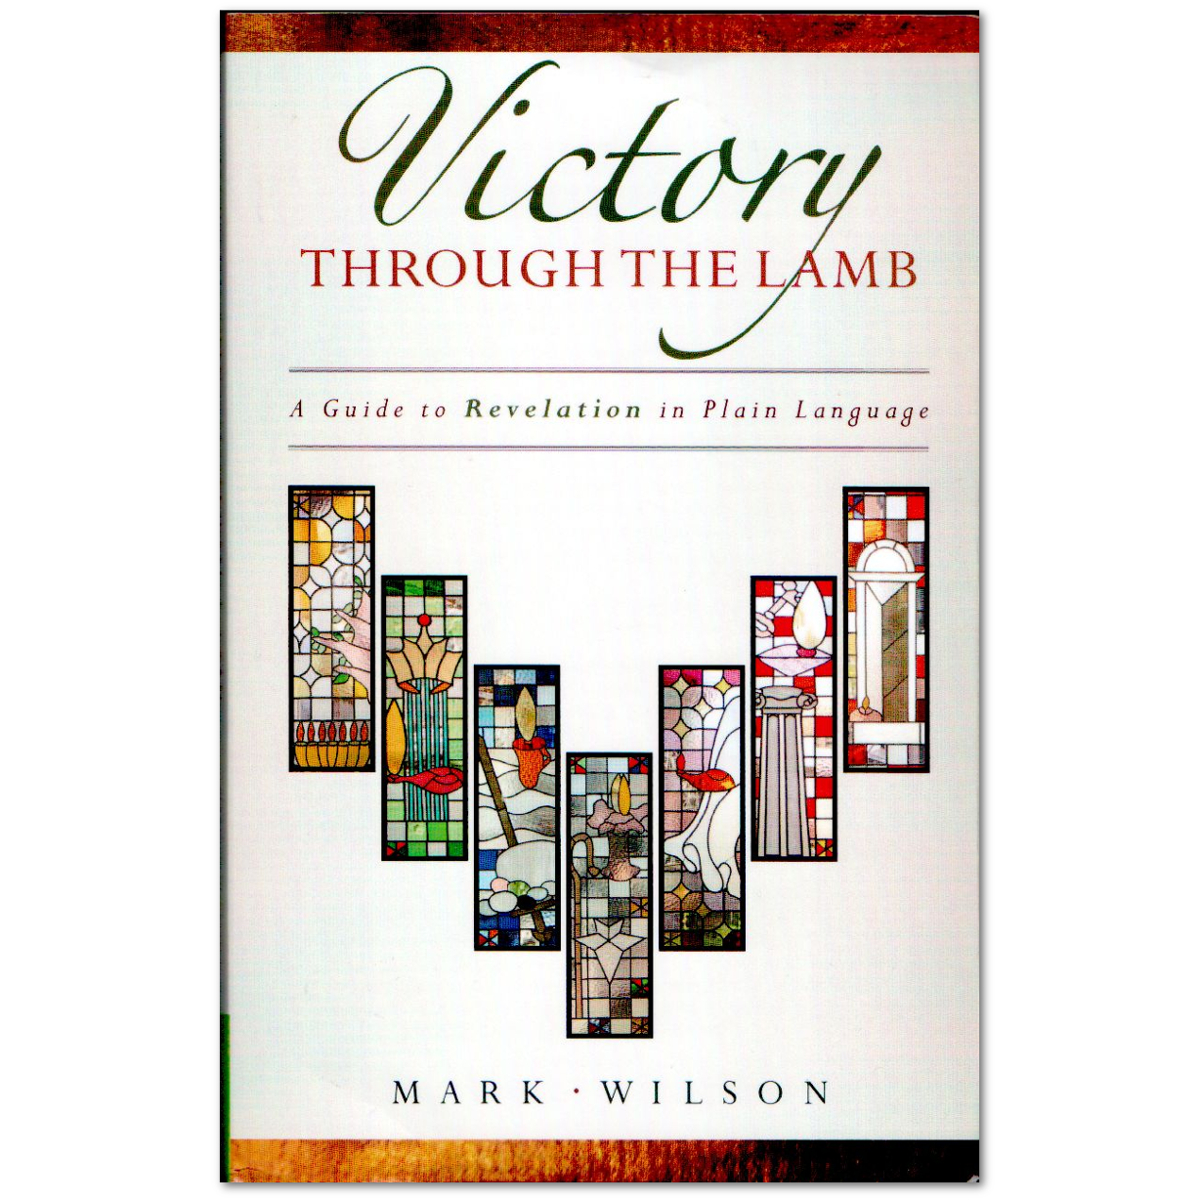 Victory through the Lamb: Read-worthy, though No Epiphanies